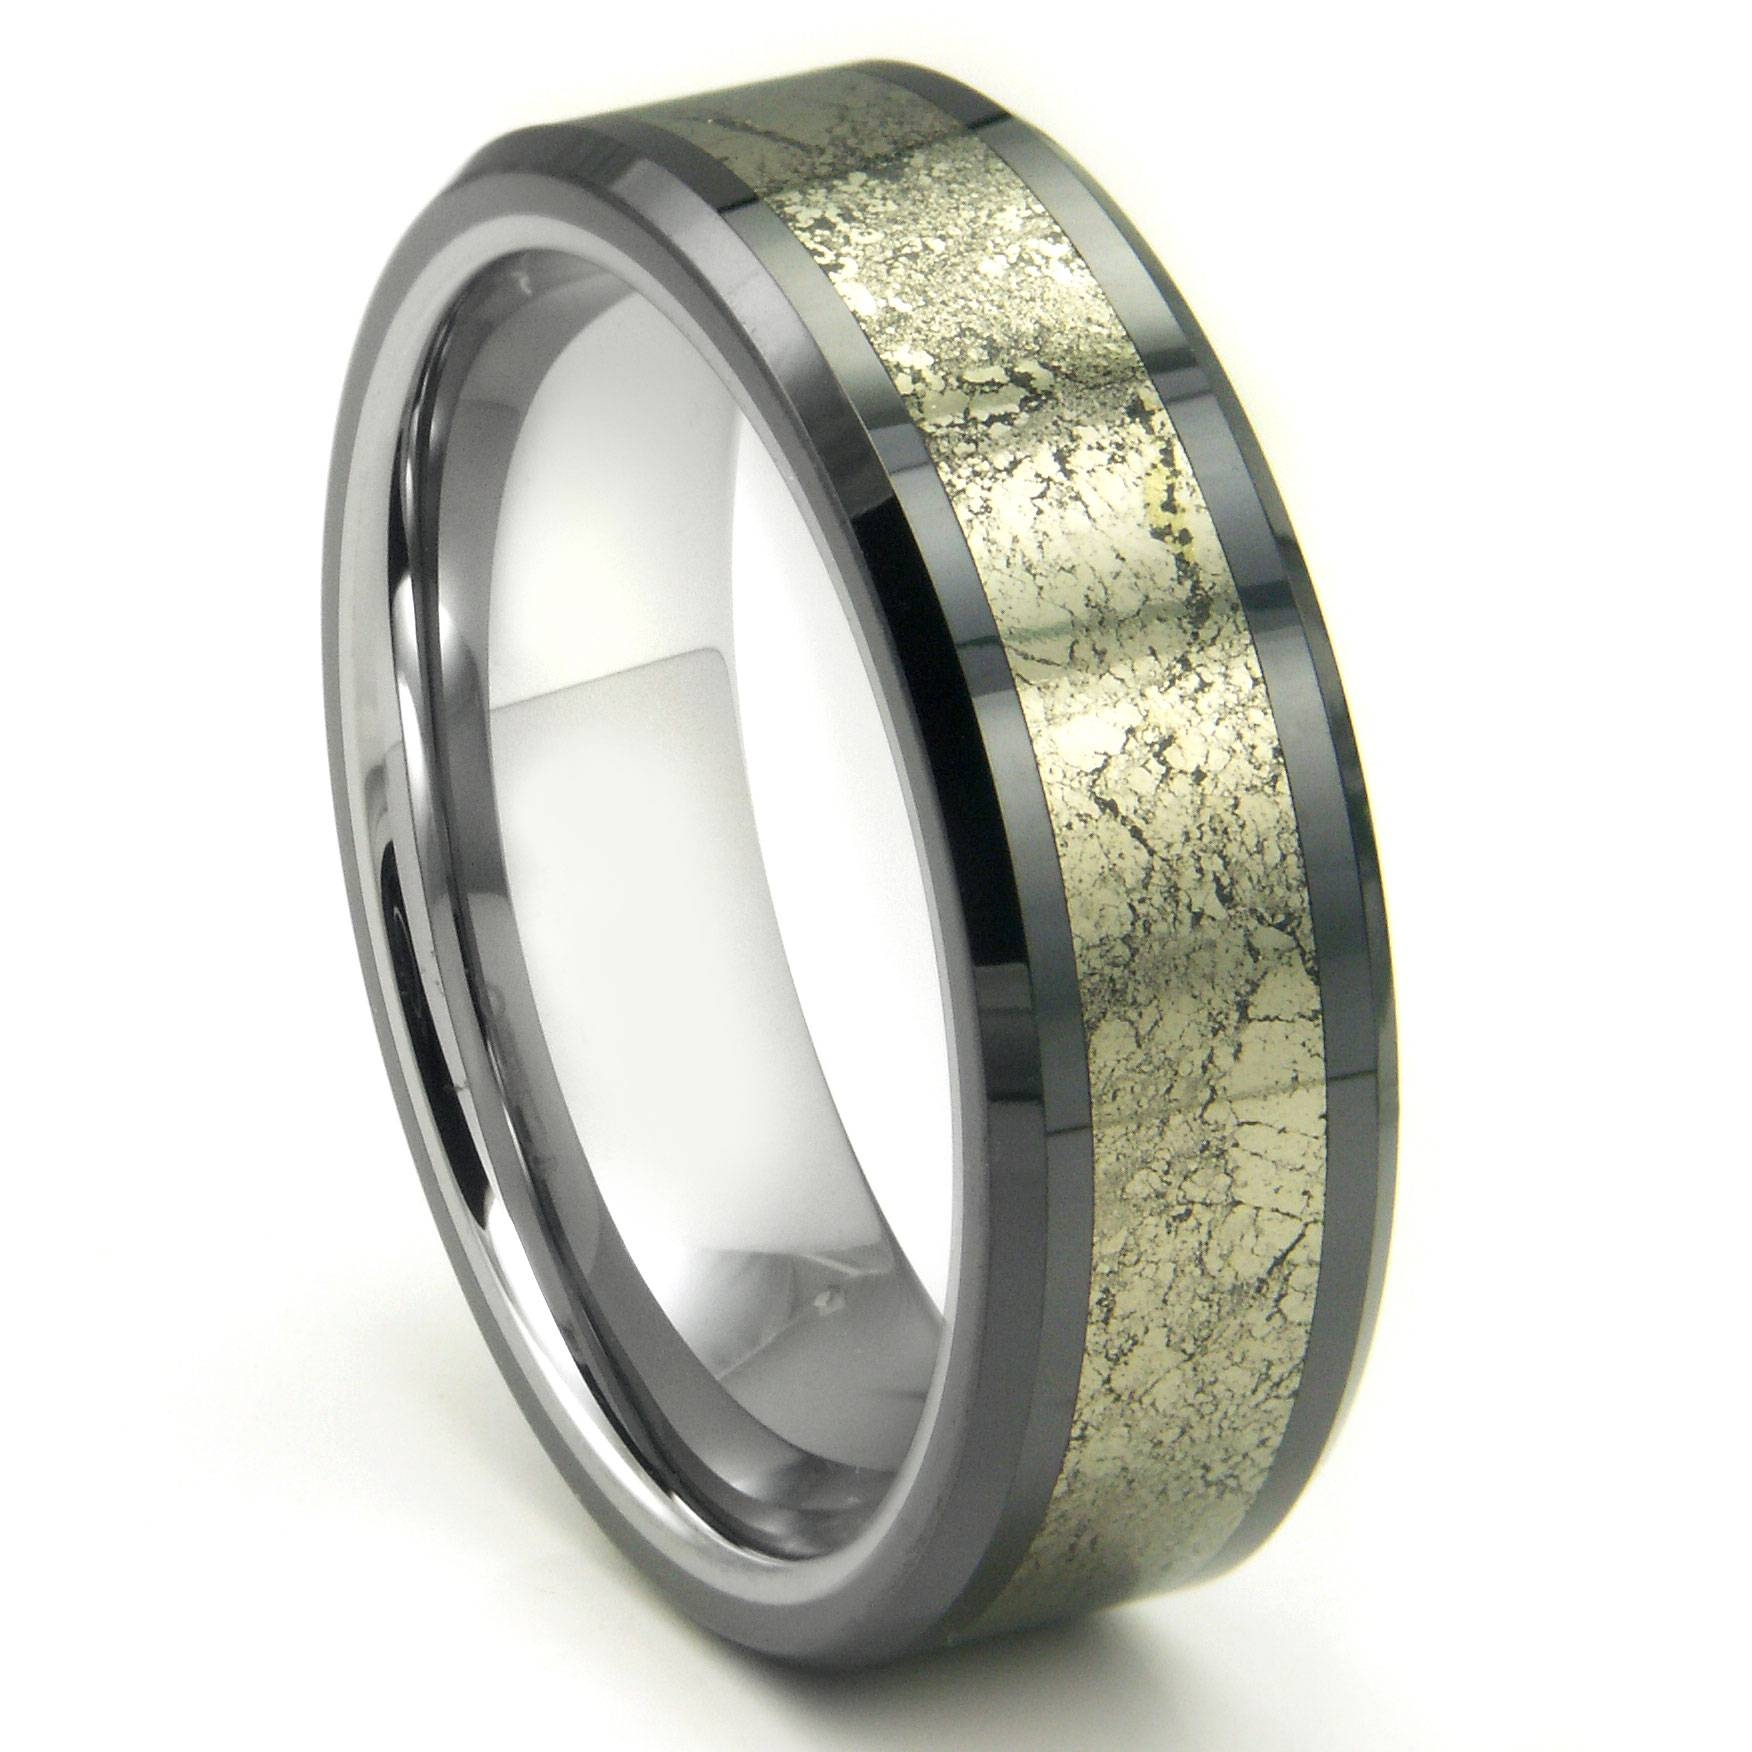 Tungsten Carbide Golden Meteorite Inlay Wedding Band Ring Regarding Gunmetal Wedding Bands (View 13 of 15)